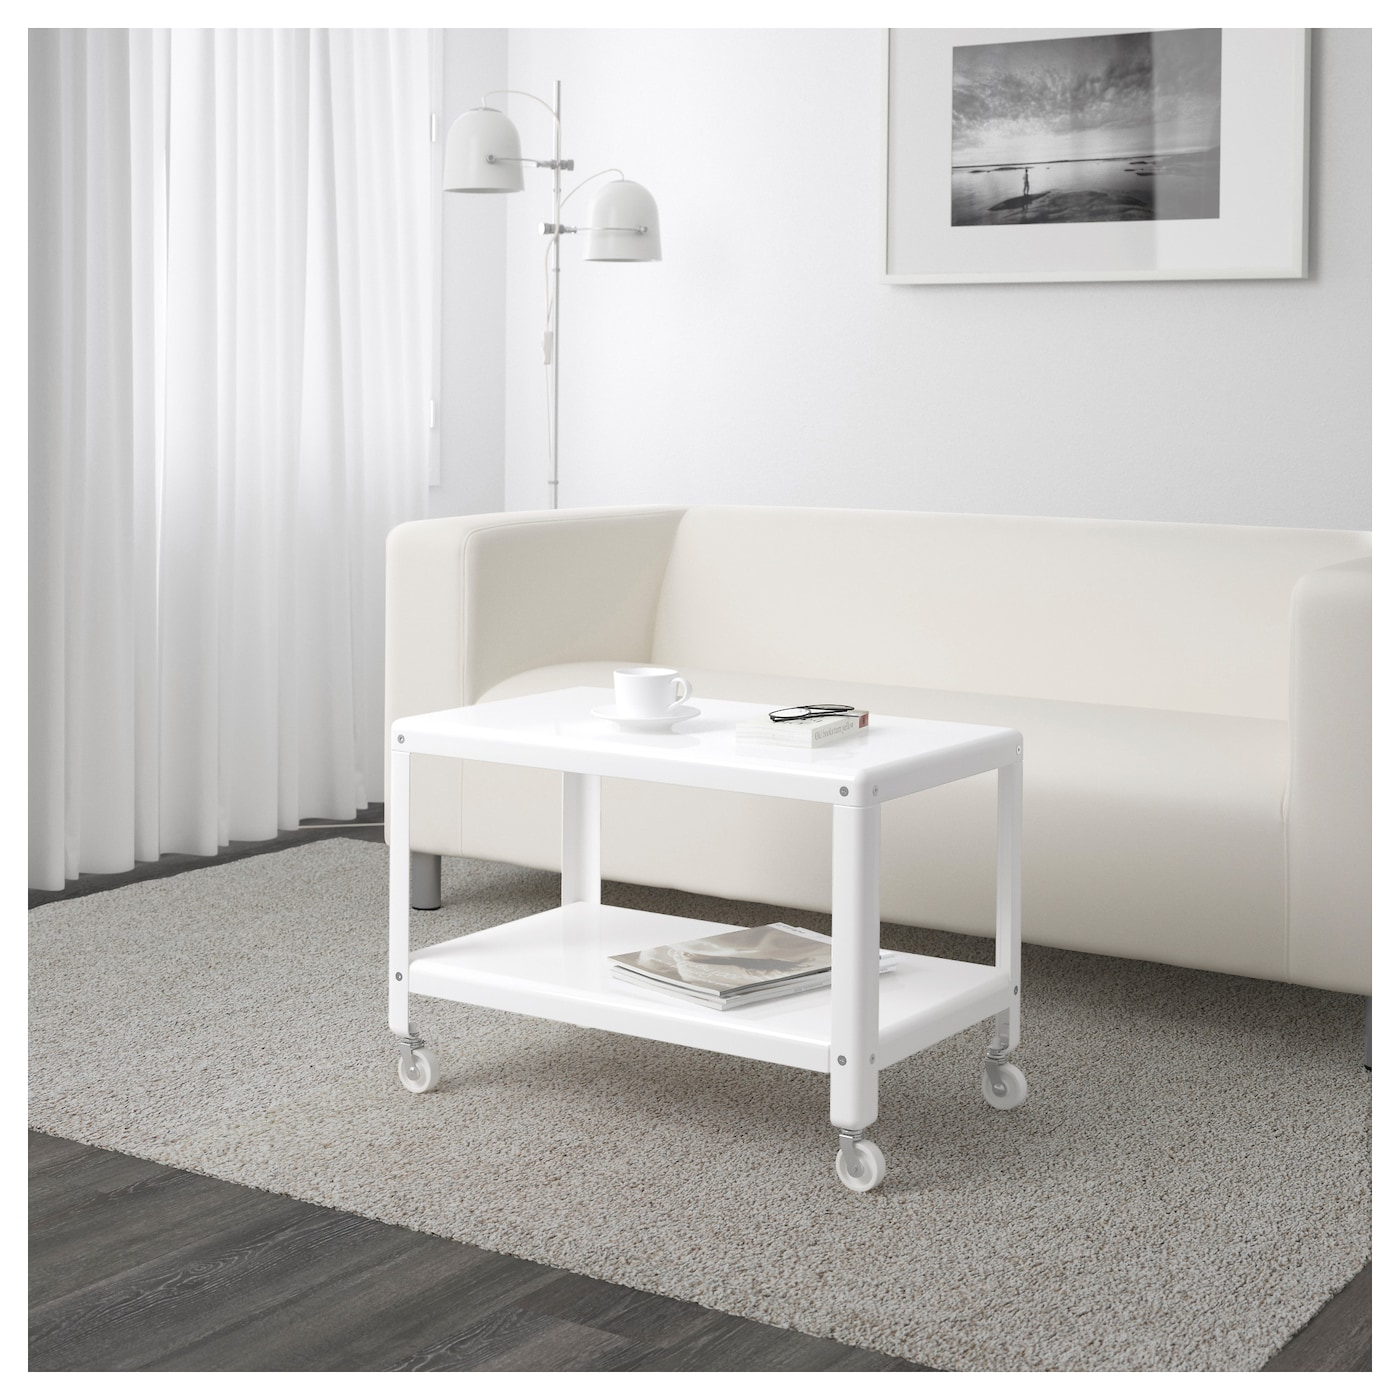 IKEA PS 2012 Coffee table White 70×42 cm  IKEA